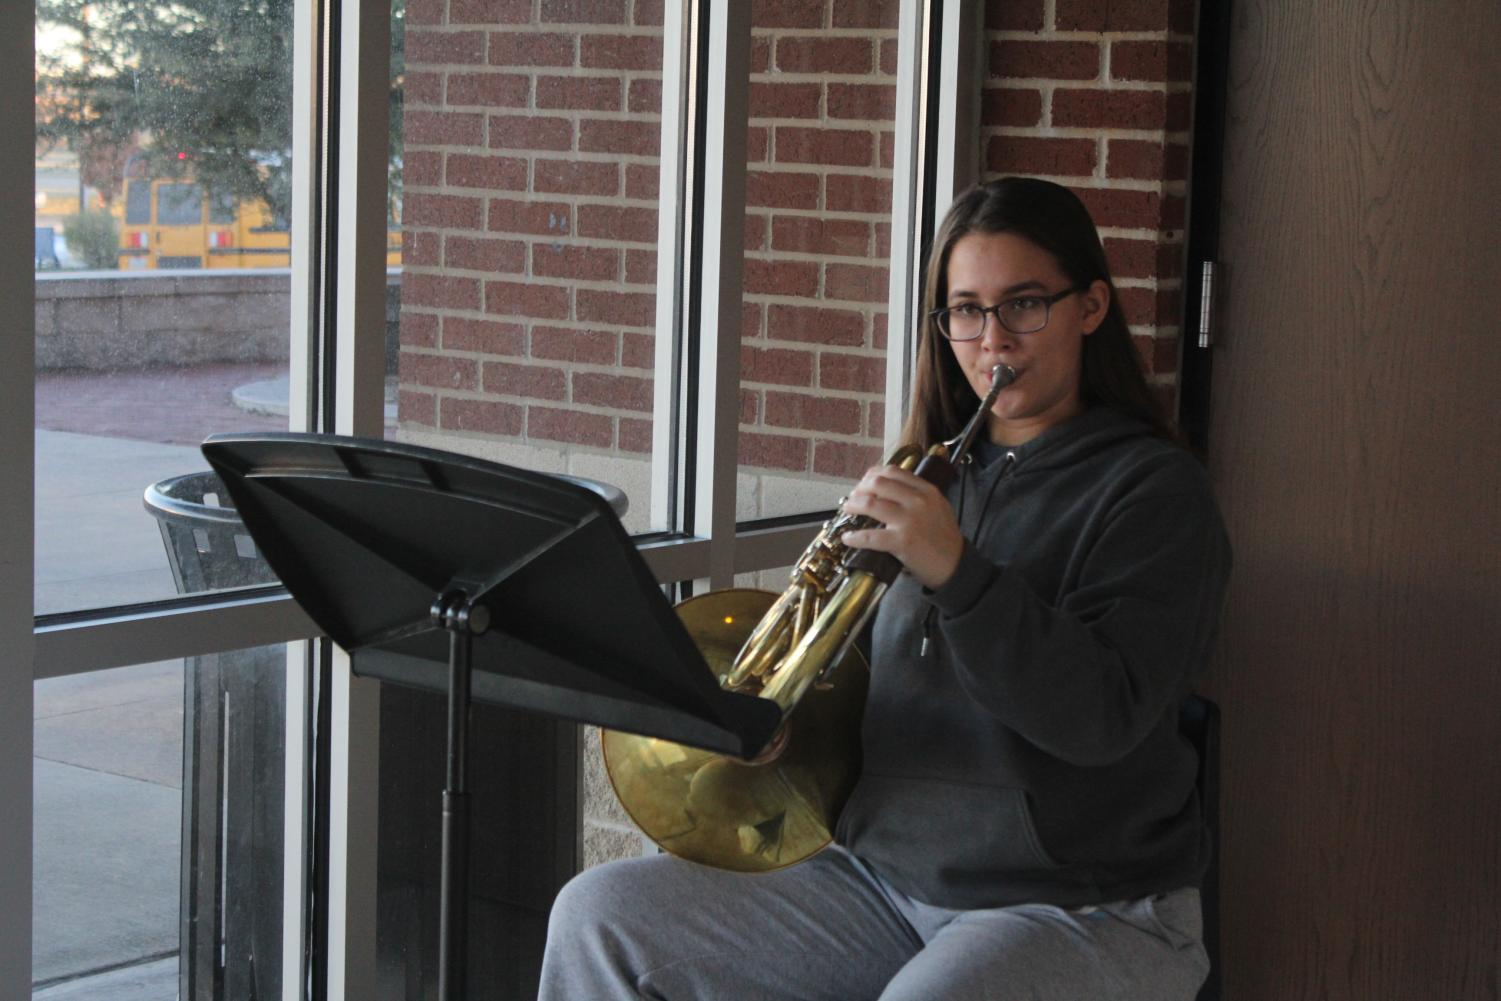 Junior Xinrae Cardozo warms up on her French horn before school. She is a three-time Area musician.